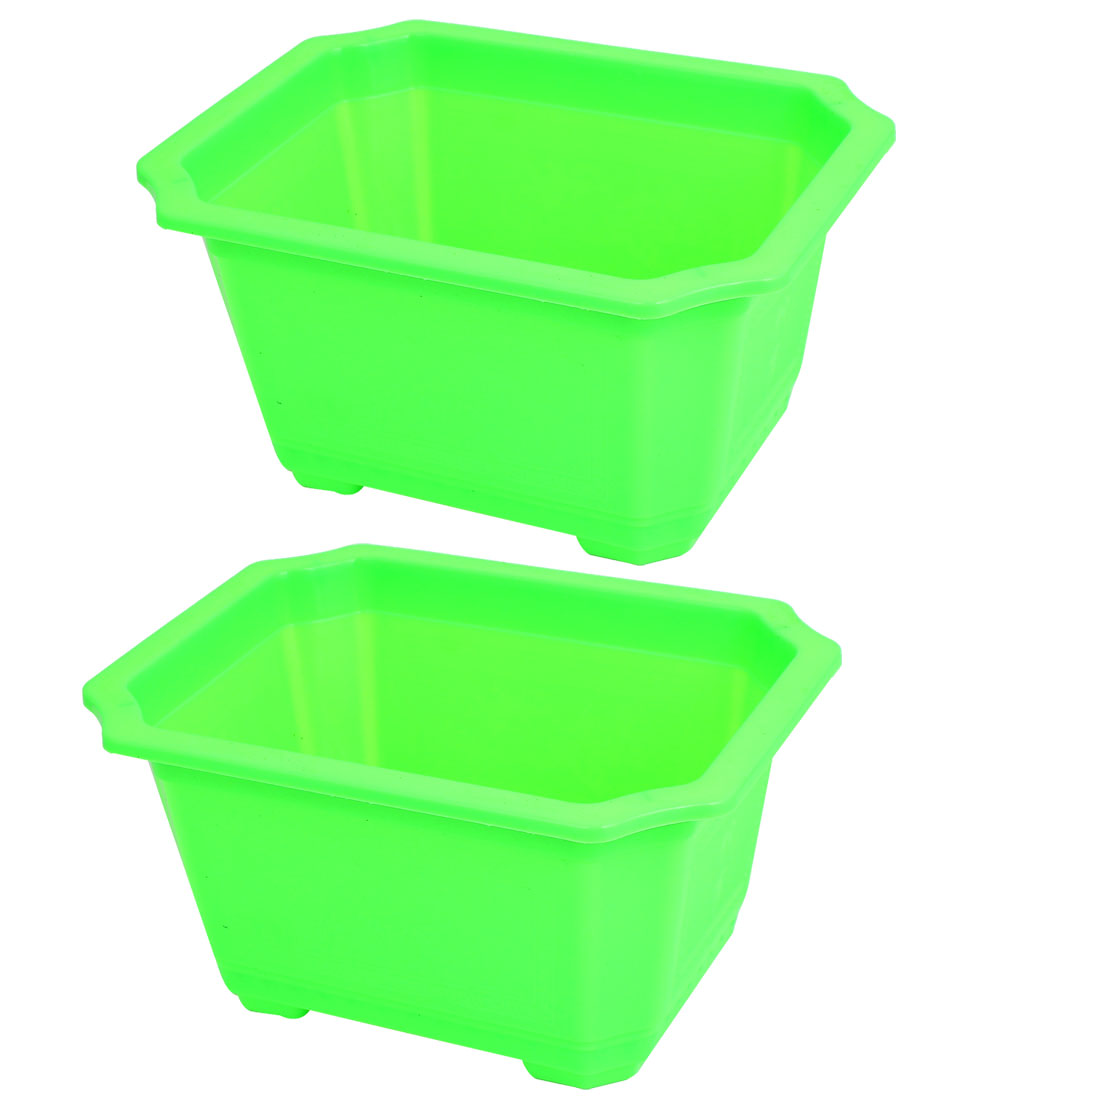 Plastic Rectangle Shaped Home Garden Window Decor Plant Flower Pot Green 2pcs